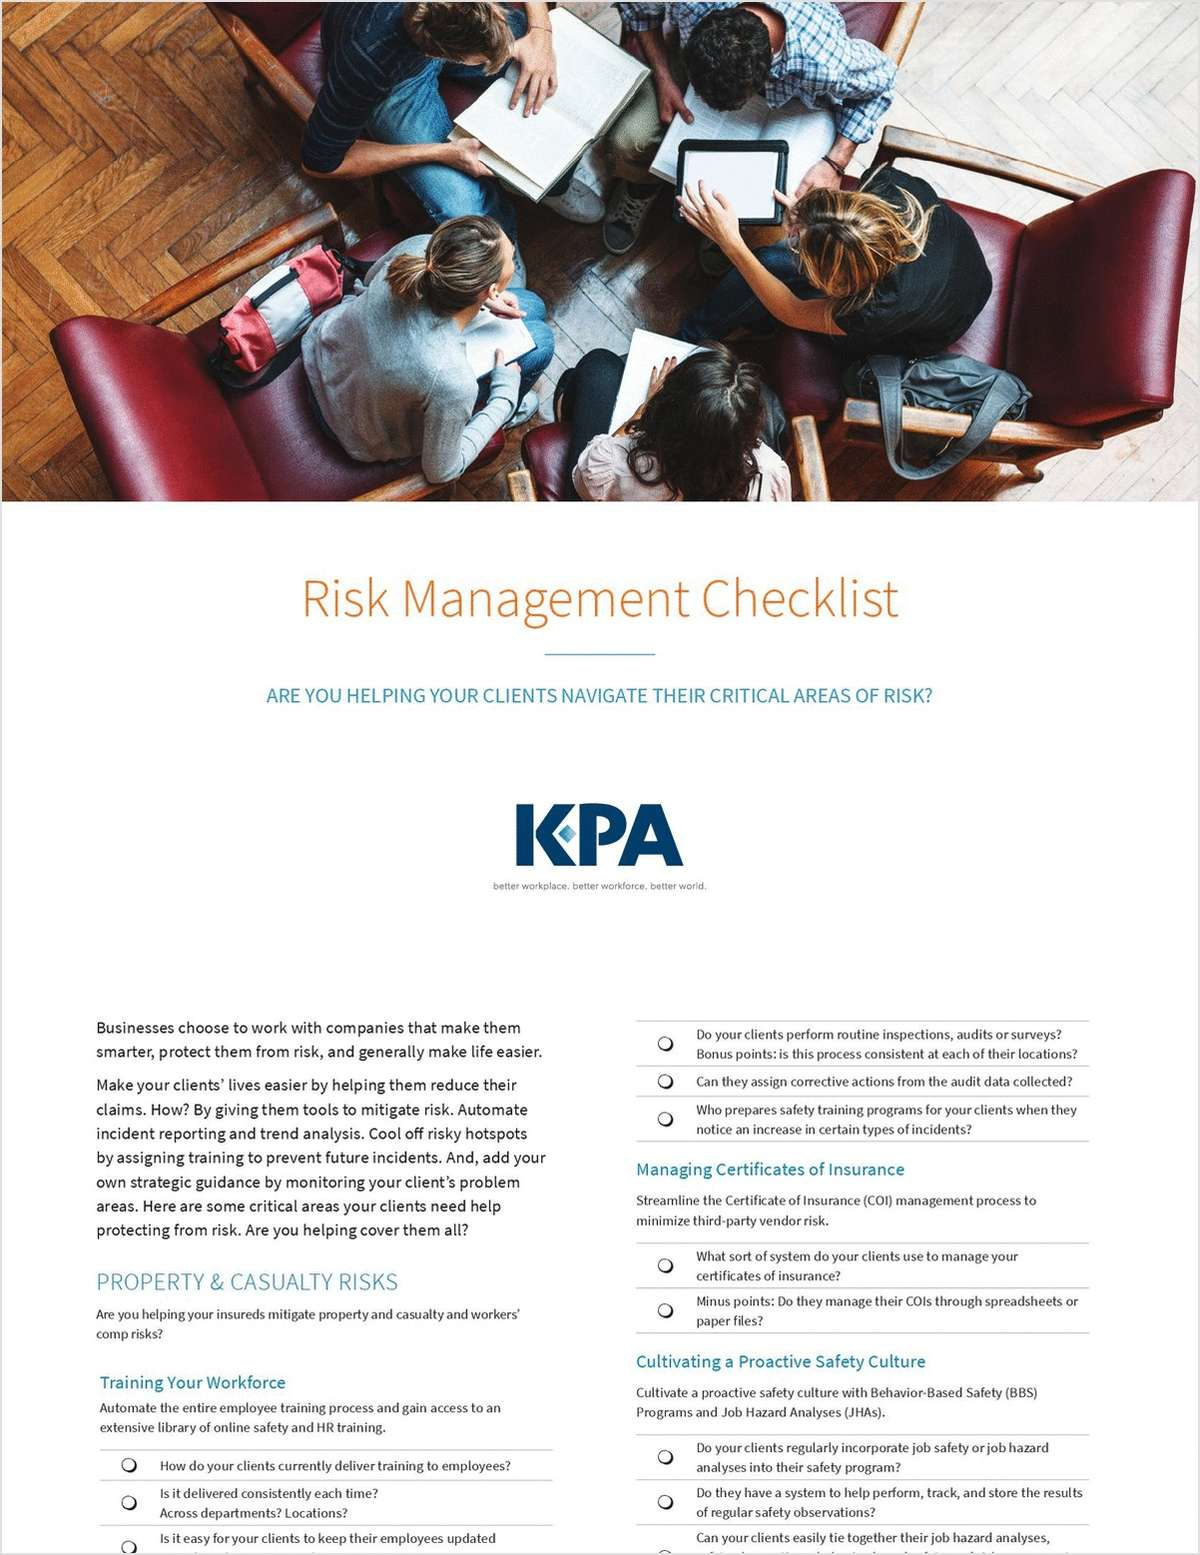 Risk Management Checklist: Are You Helping Clients Navigate Their Critical Areas of Risk?